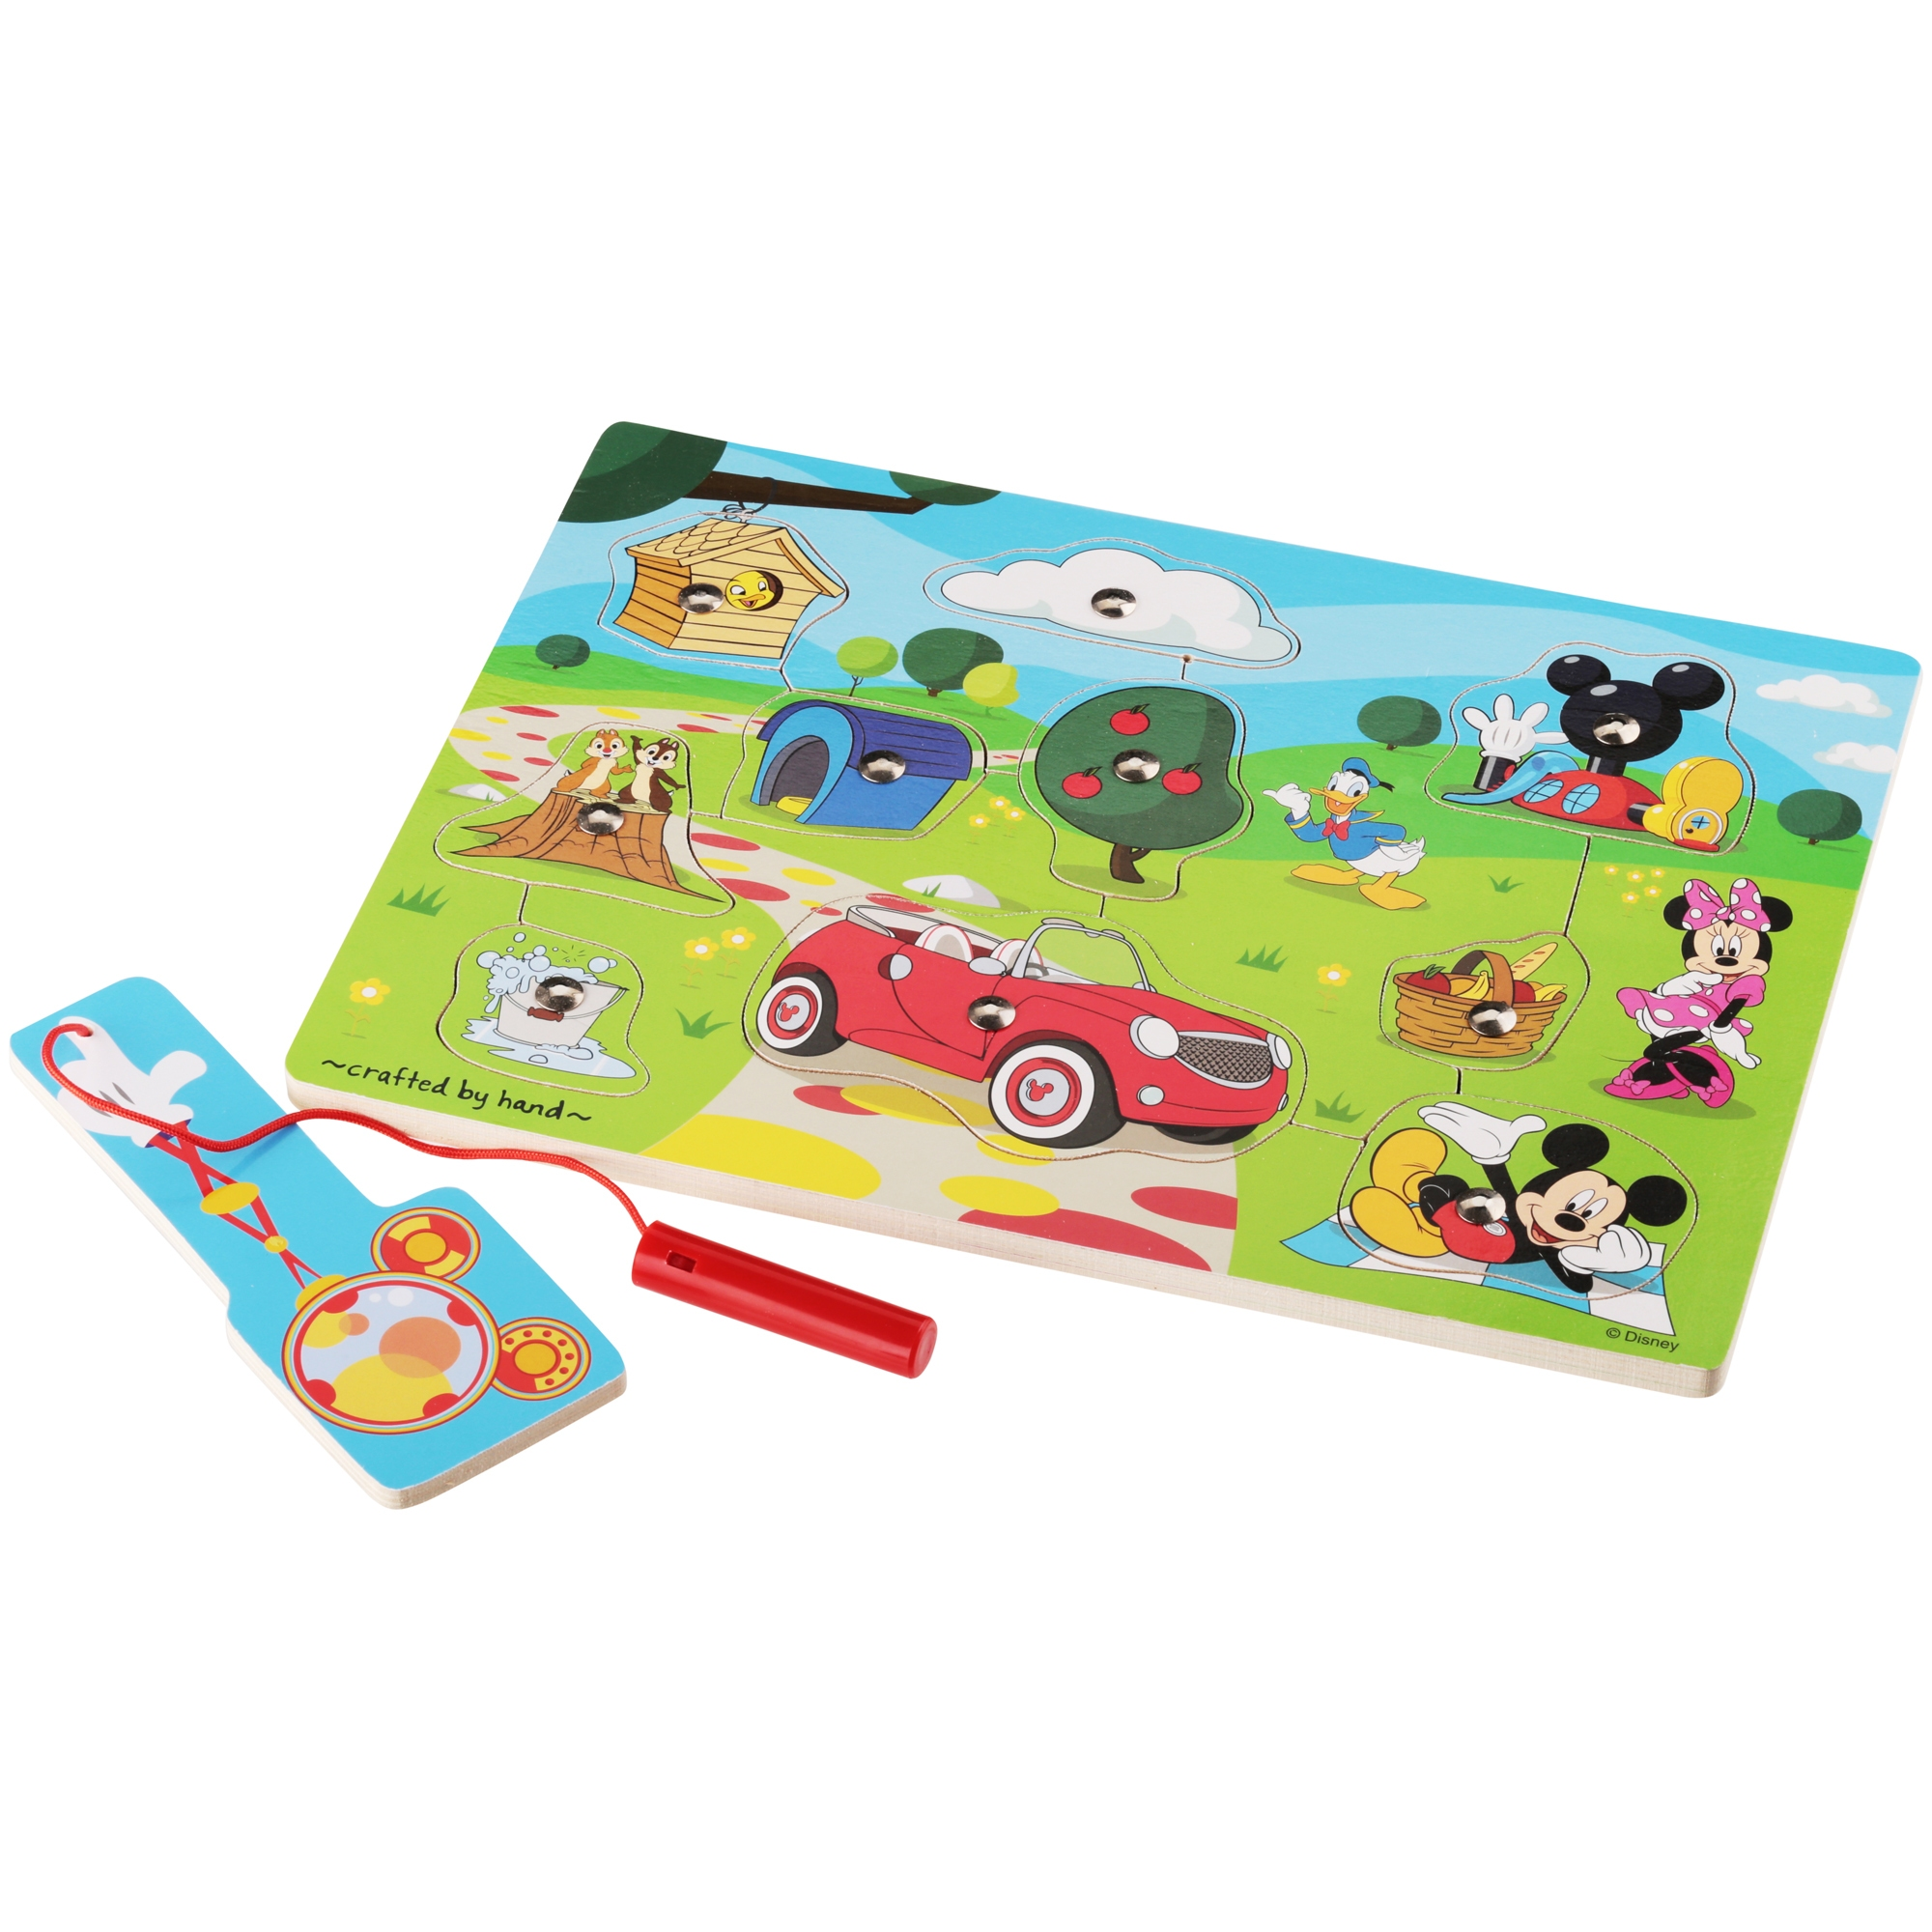 Melissa & Doug® Disney Mickey Mouse Clubhouse Hide & Seek Wooden Magnetic Game 11 pc Pack